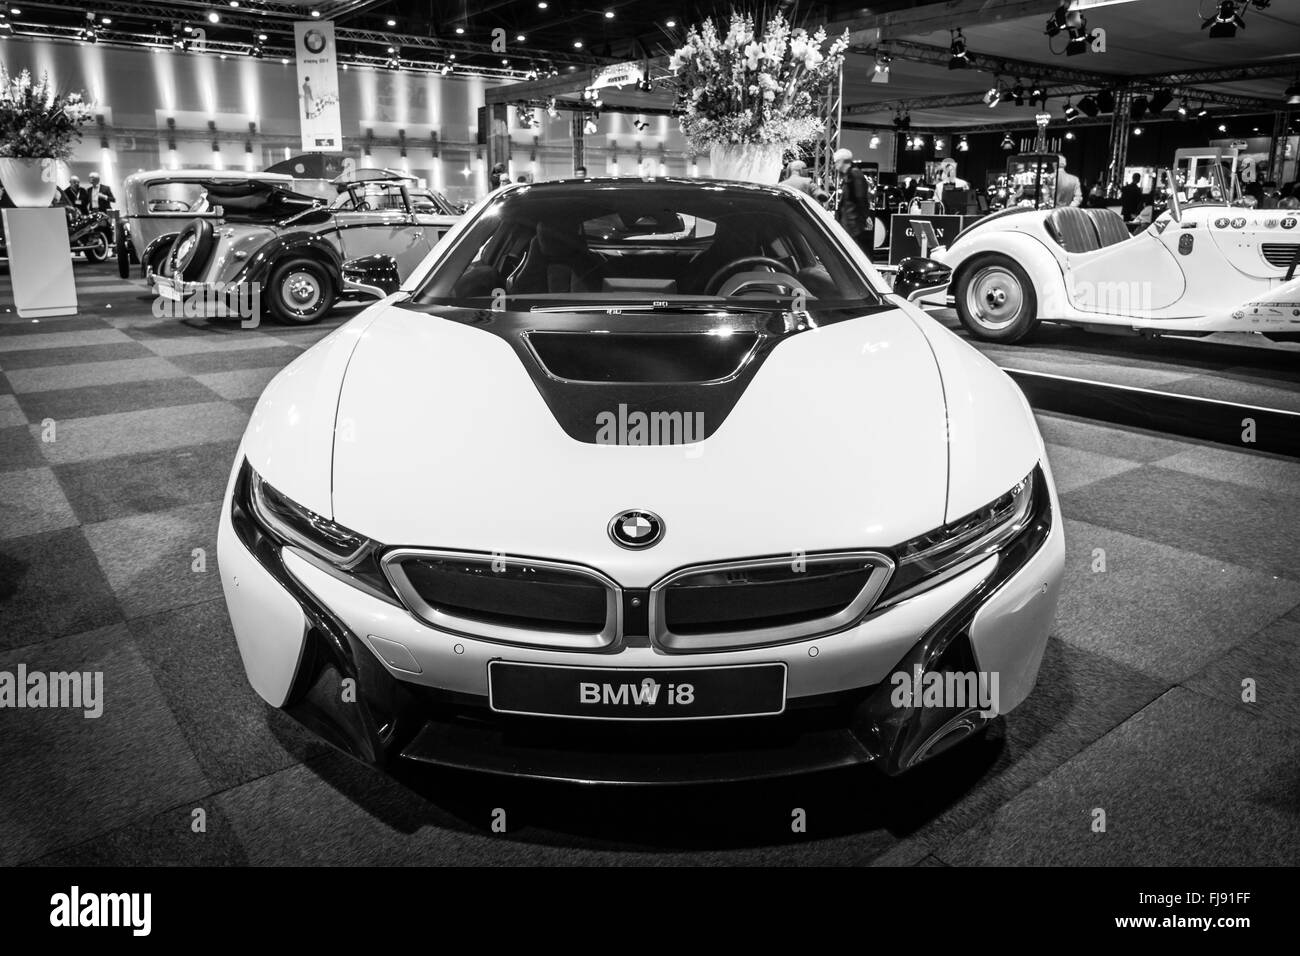 plug in hybrid sports car bmw i8 black and white stock photo